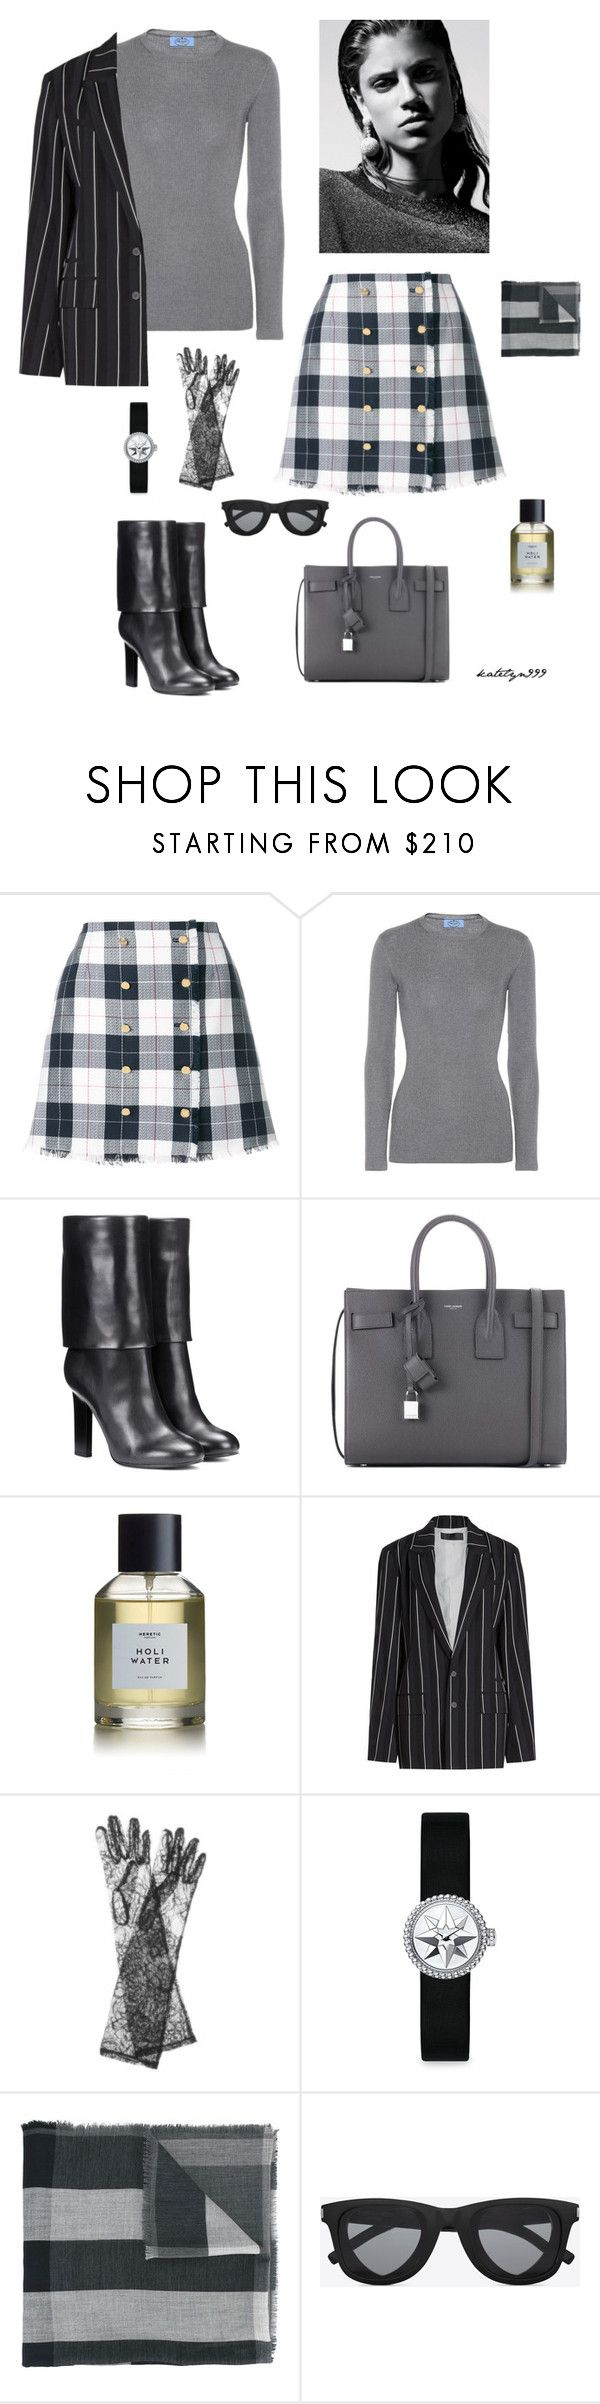 """""""..."""" by katelyn999 ❤ liked on Polyvore featuring Thom Browne, Prada, Victoria Beckham, Yves Saint Laurent, Heretic Parfum, Haider Ackermann, Dolce&Gabbana, Christian Dior and Burberry"""